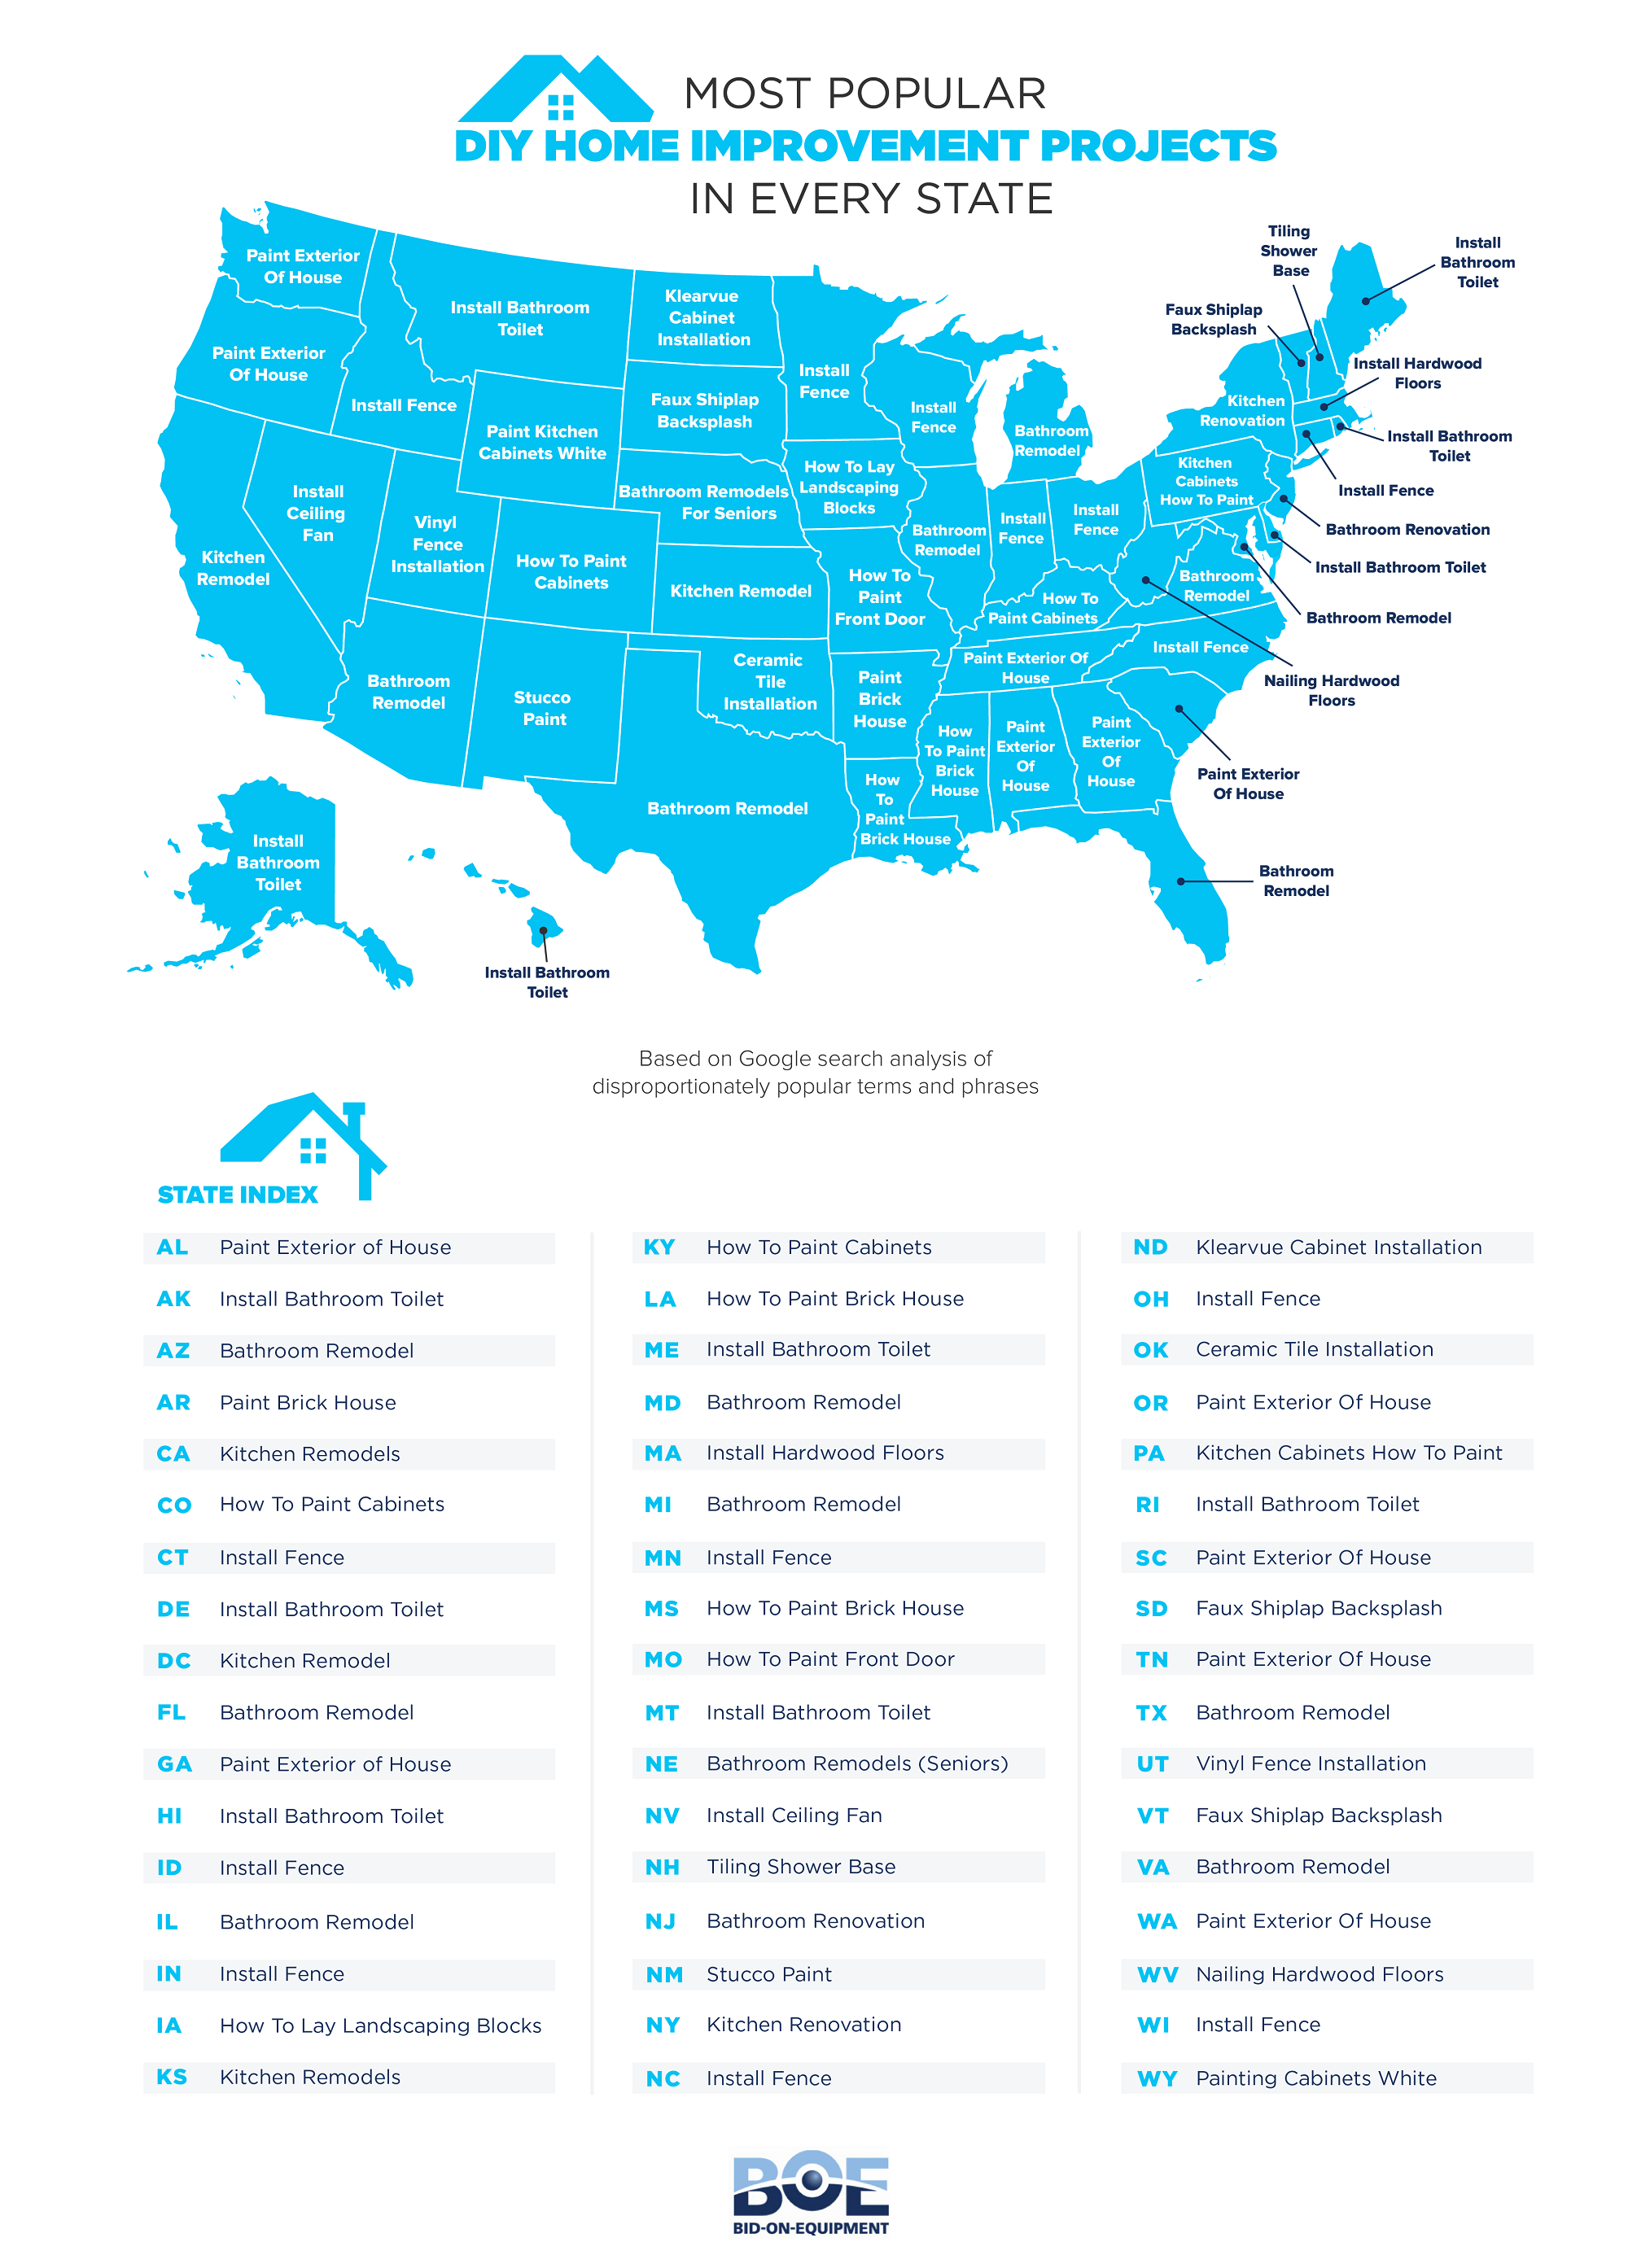 /Home Improvement by State